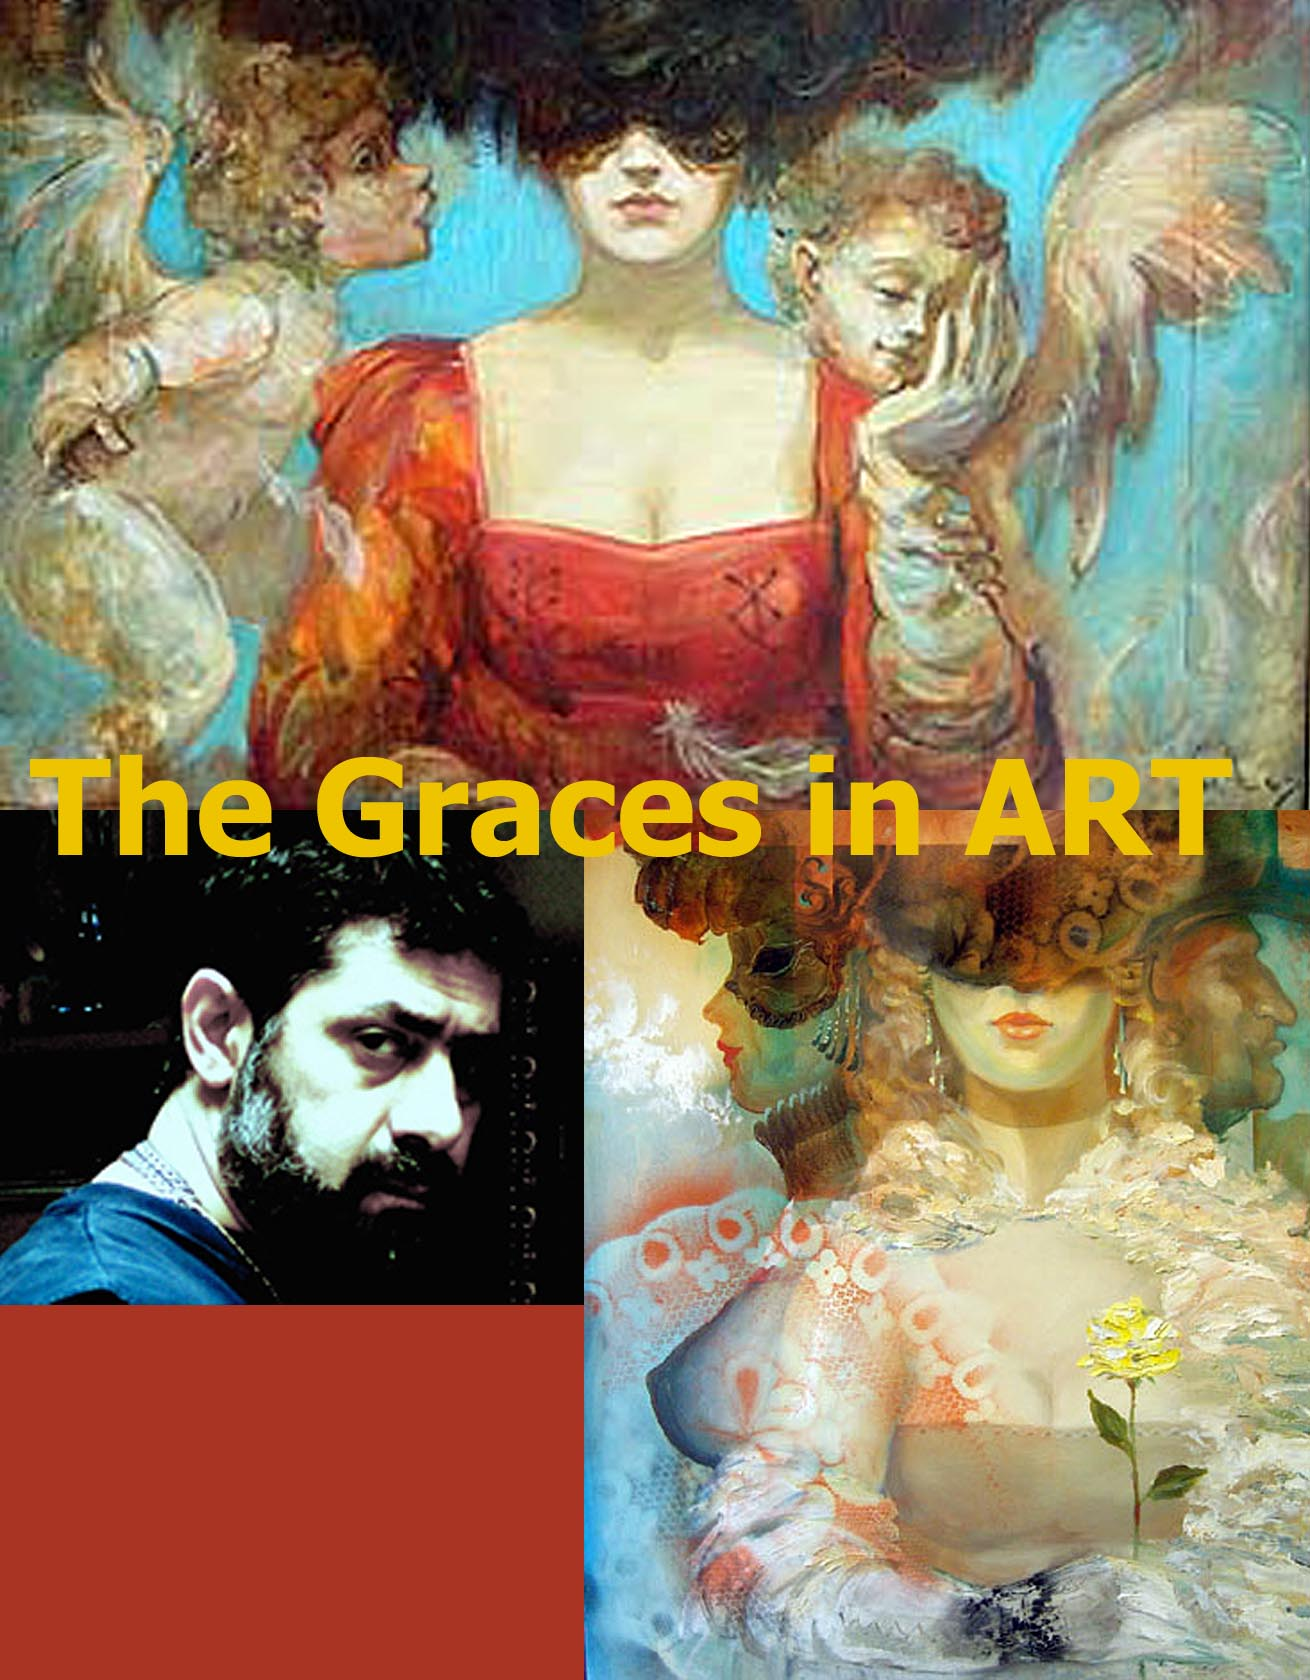 The GrACE IN ART Norik Dilanchyan2